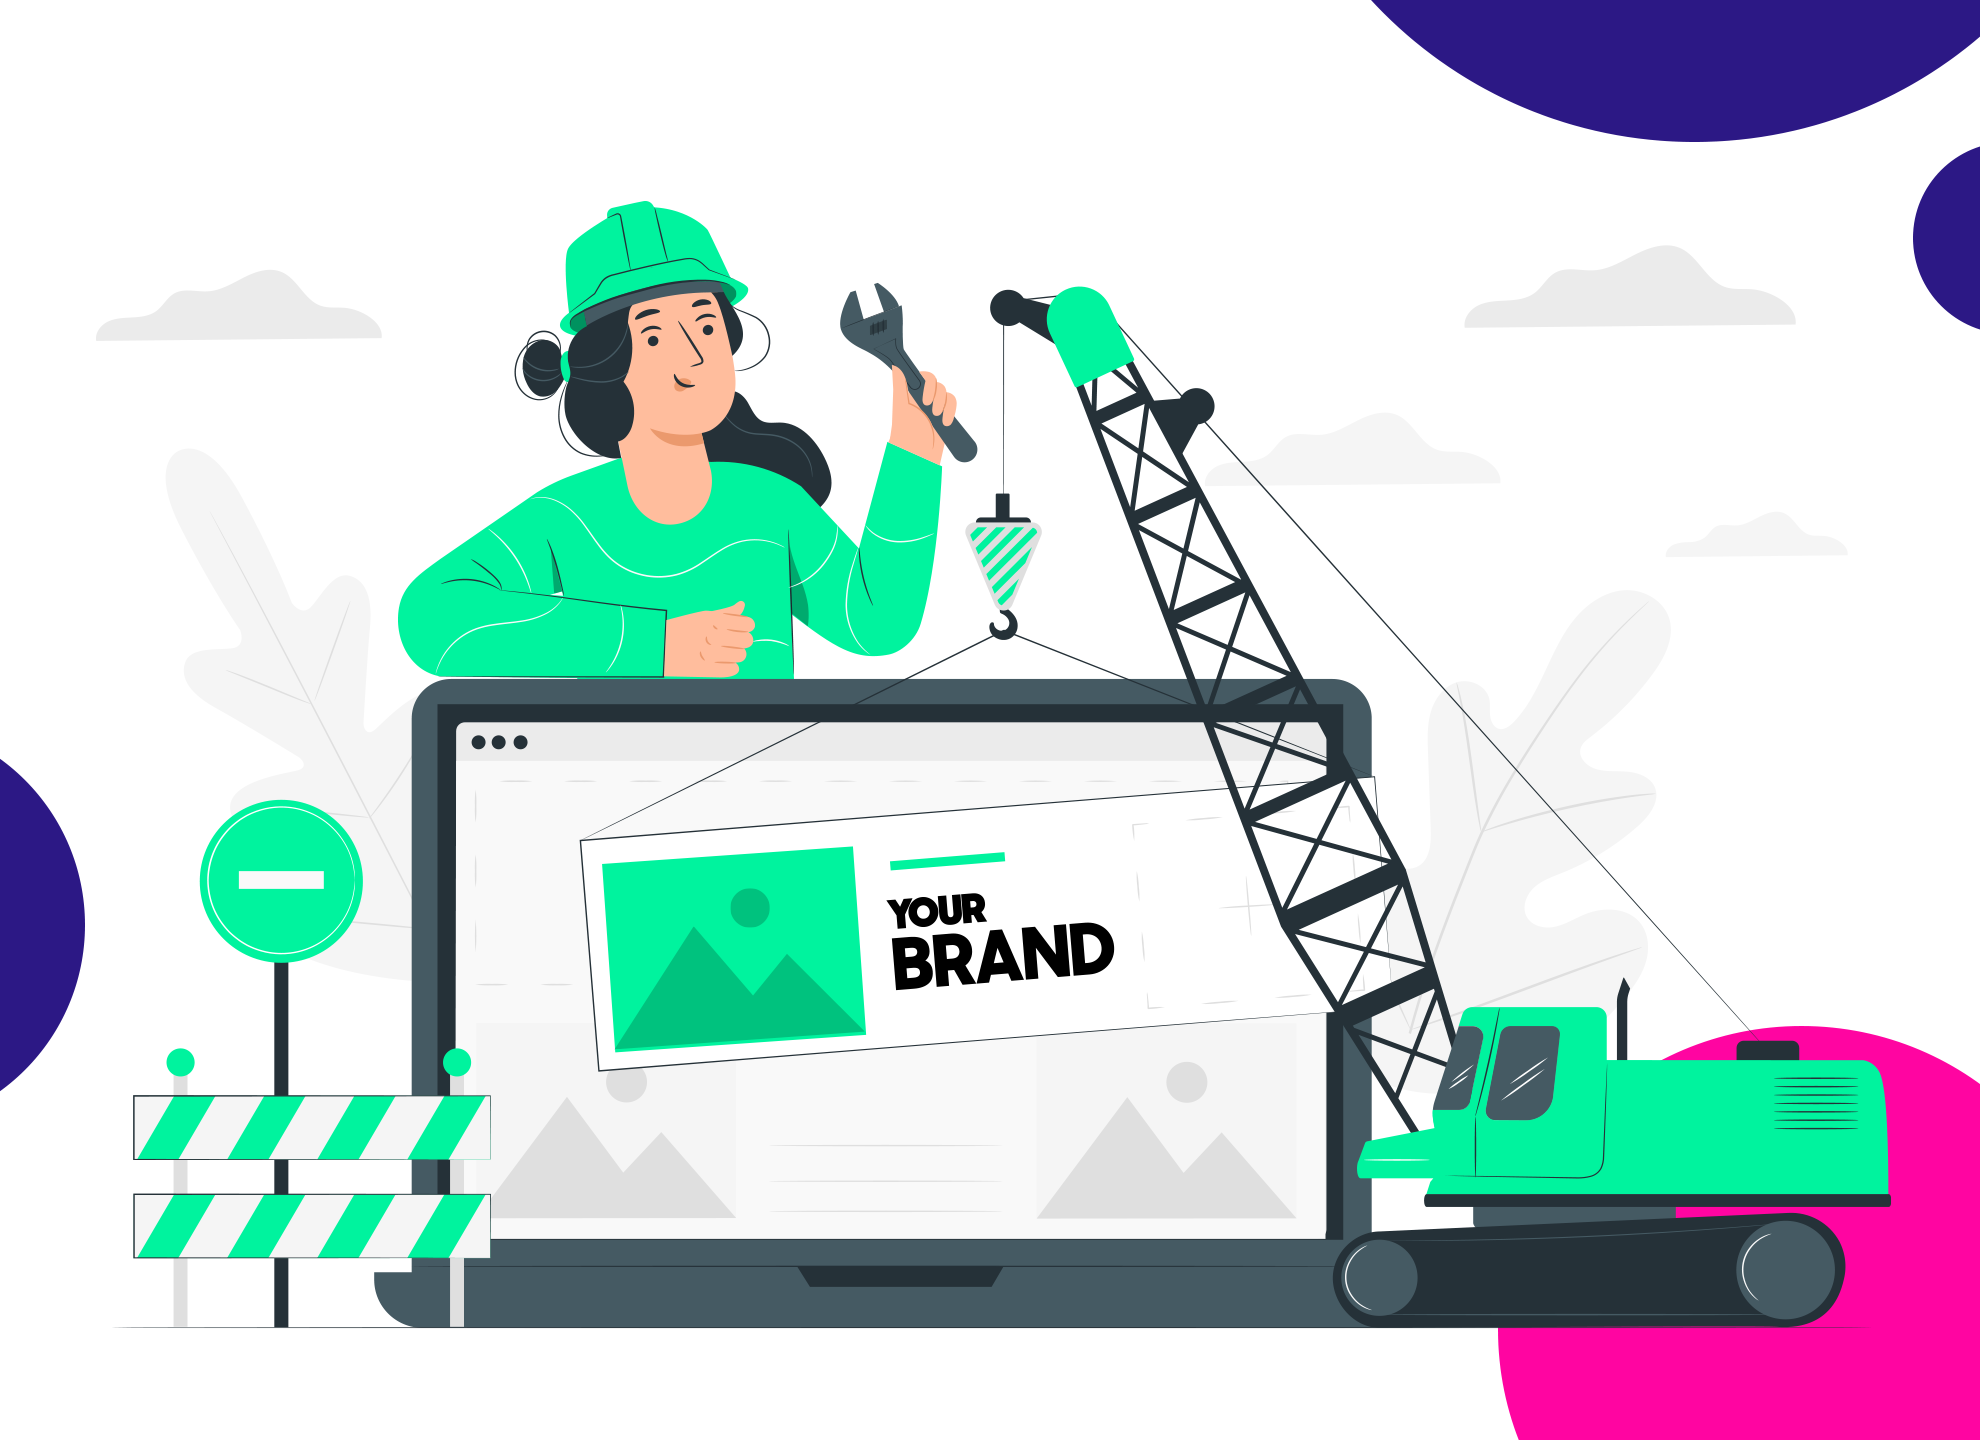 Brand Manager building a brand